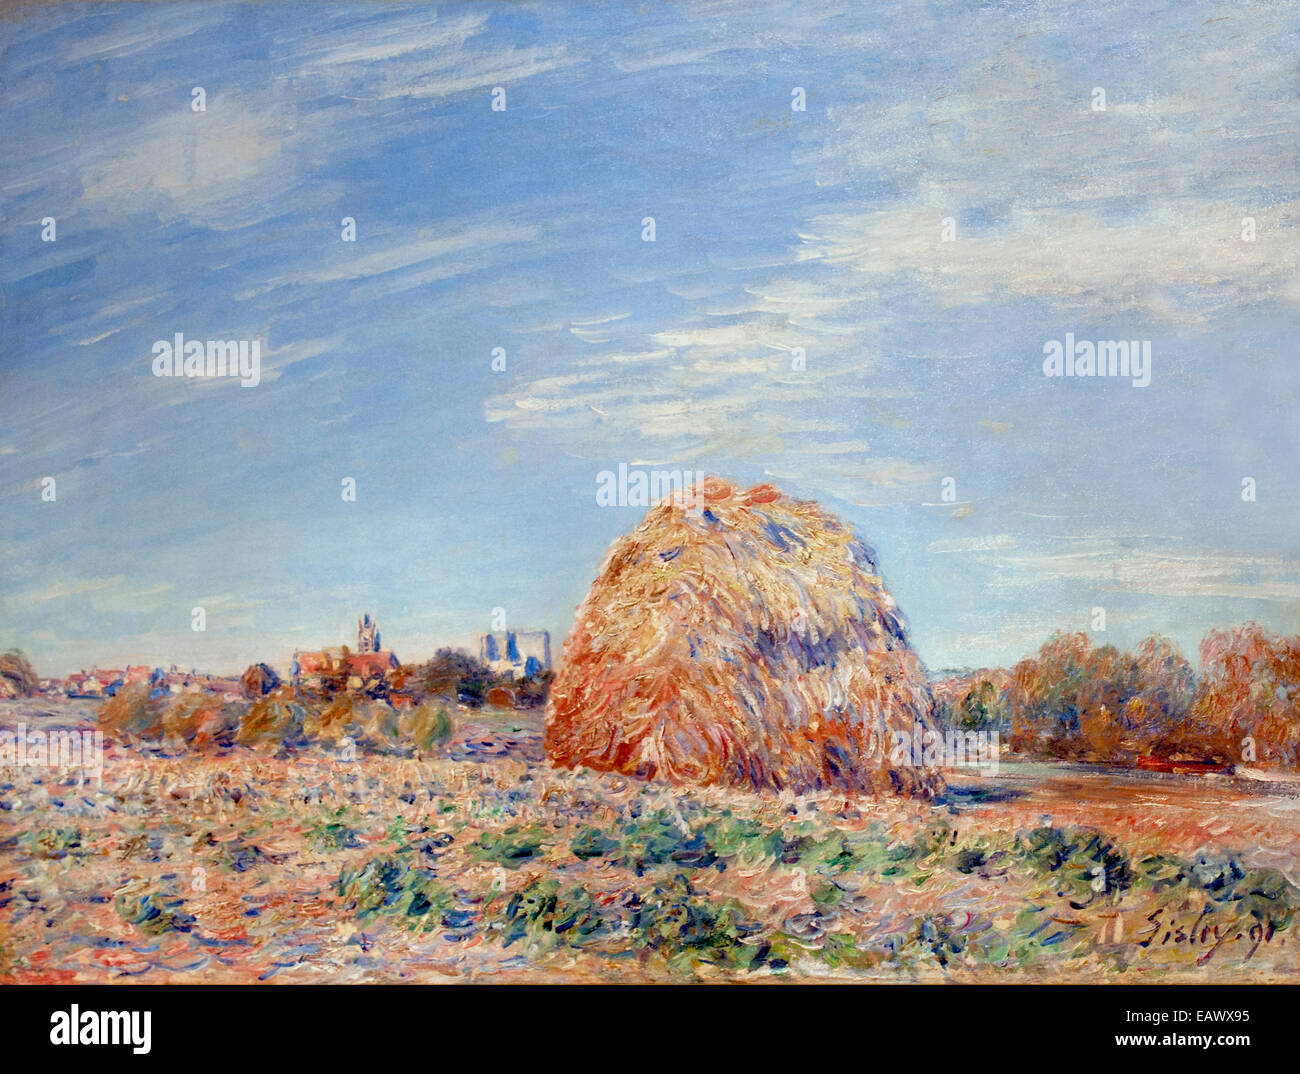 Haystack on the banks of the Loing by Alfred Sisley 1839 - 1899 British / French Impressionist France - Stock Image